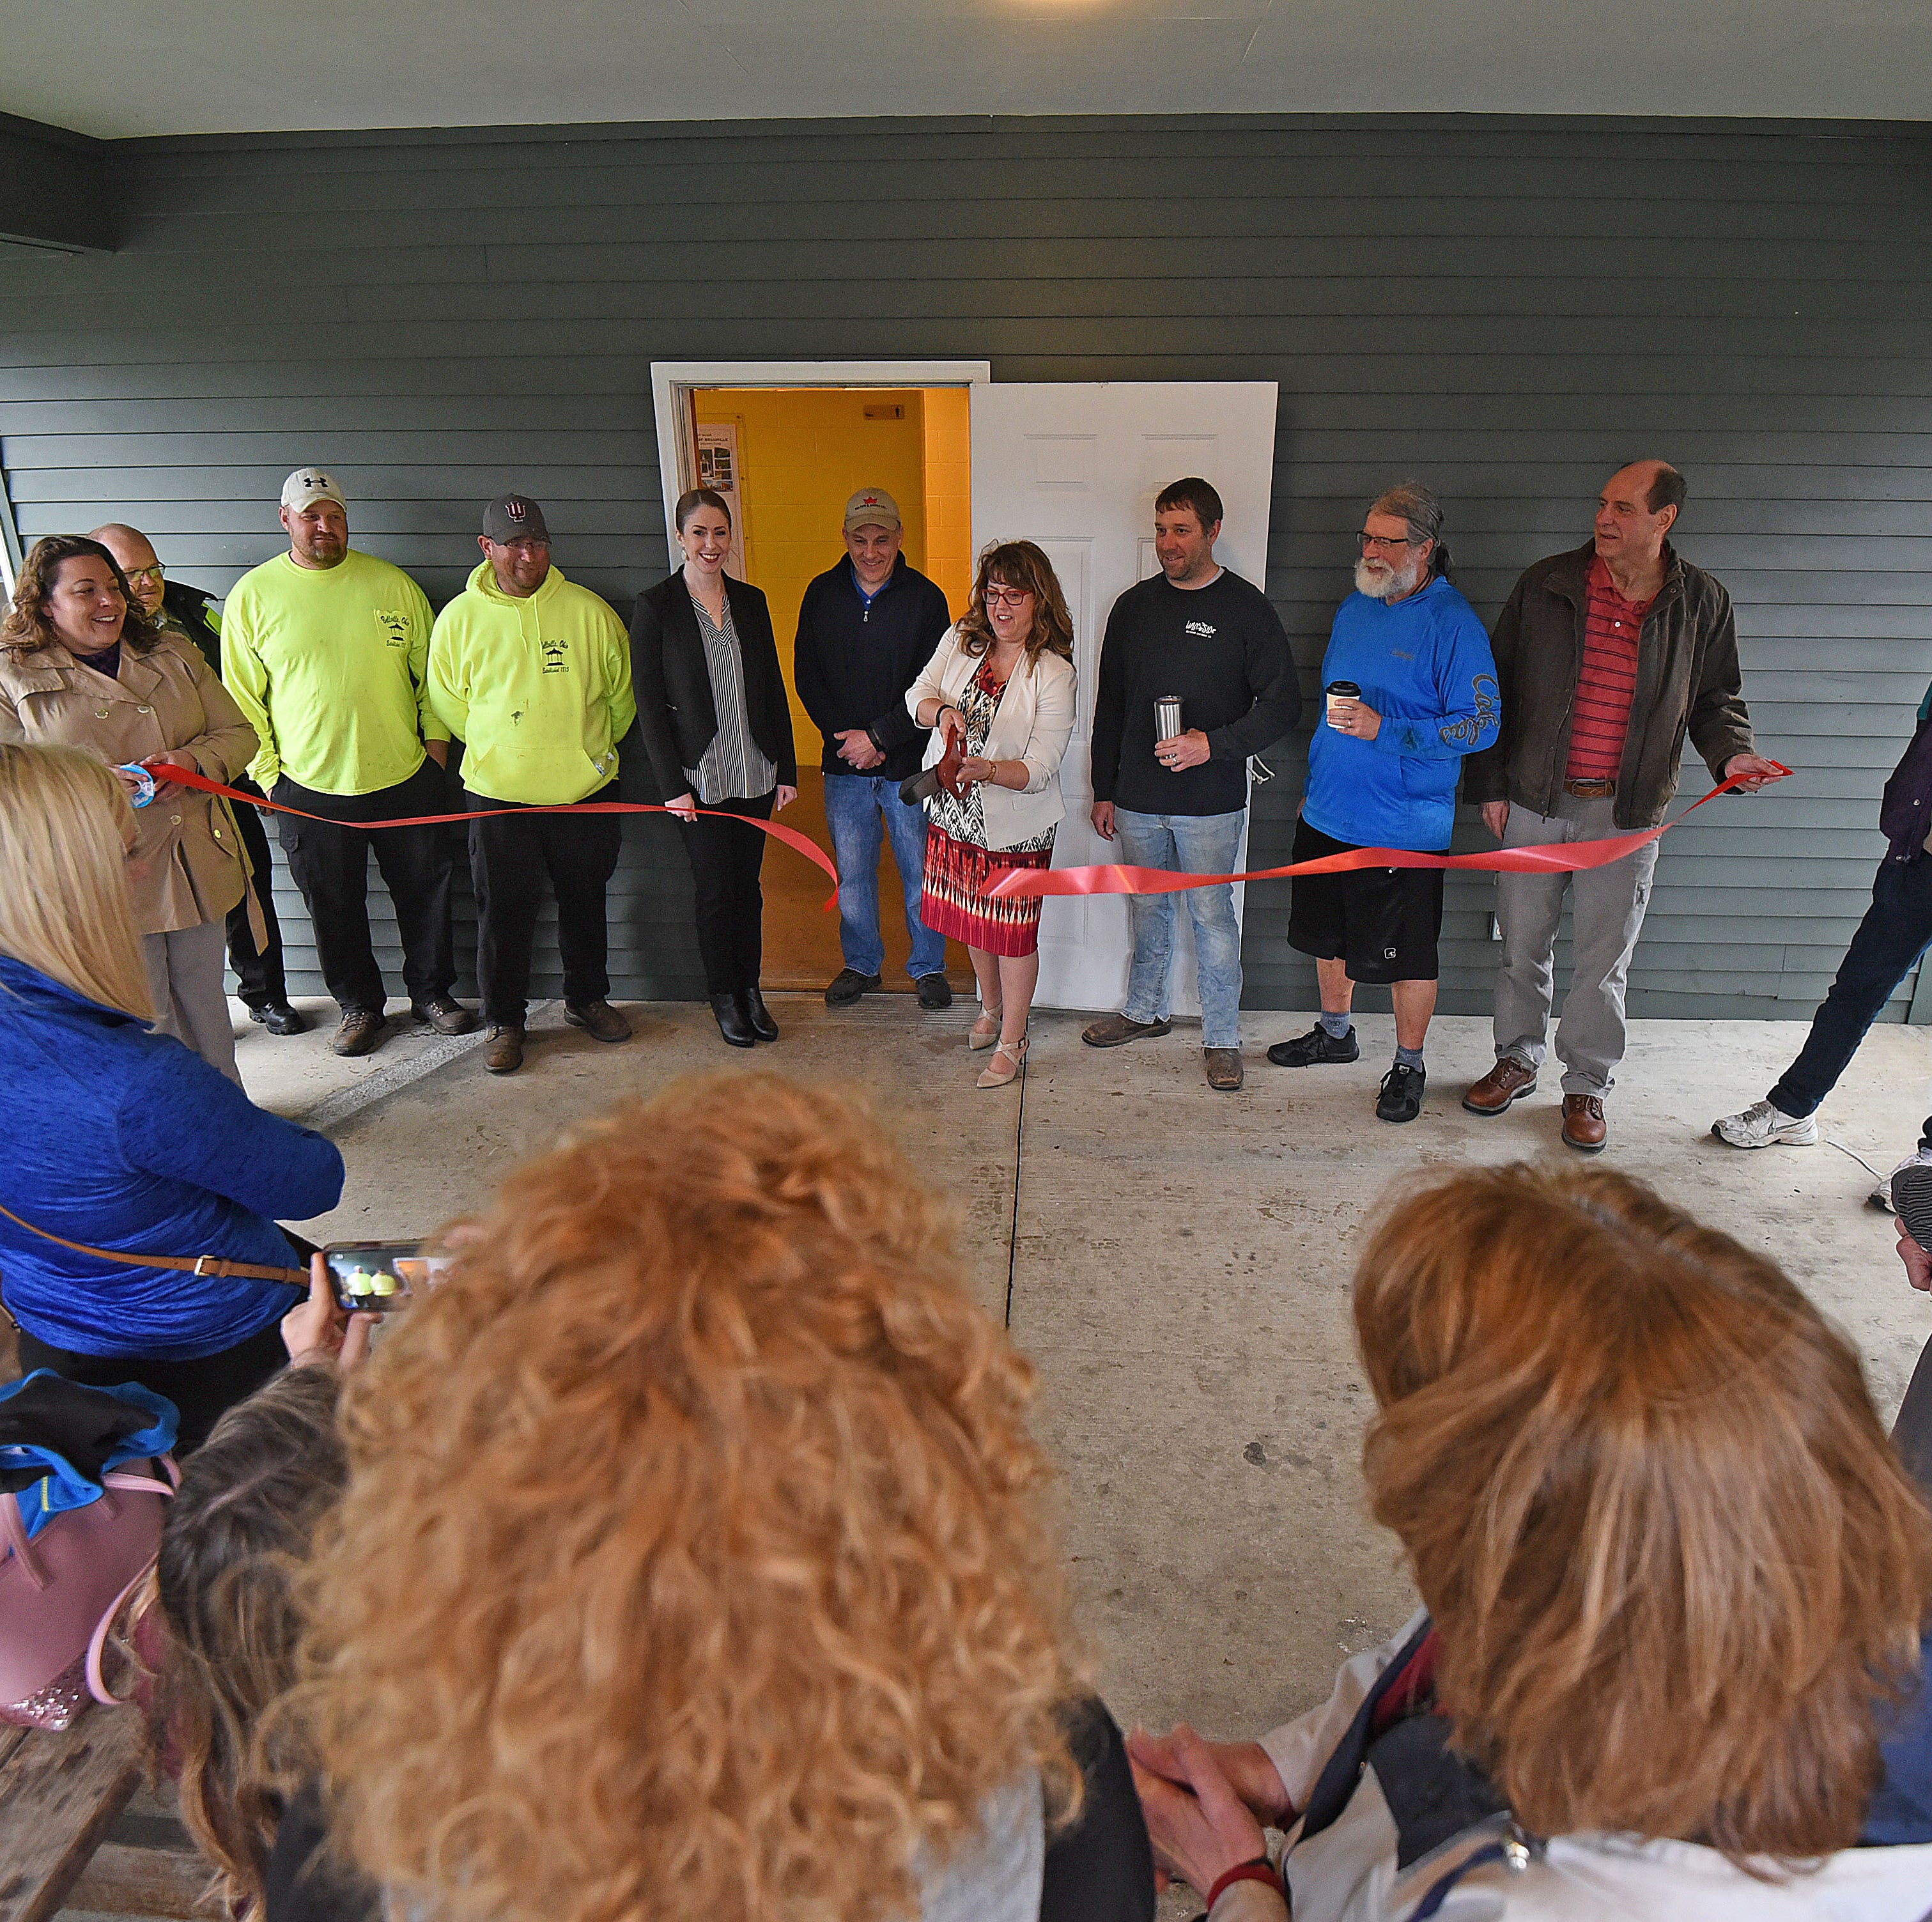 Bellville Bike Depot renovated with the help of many hands